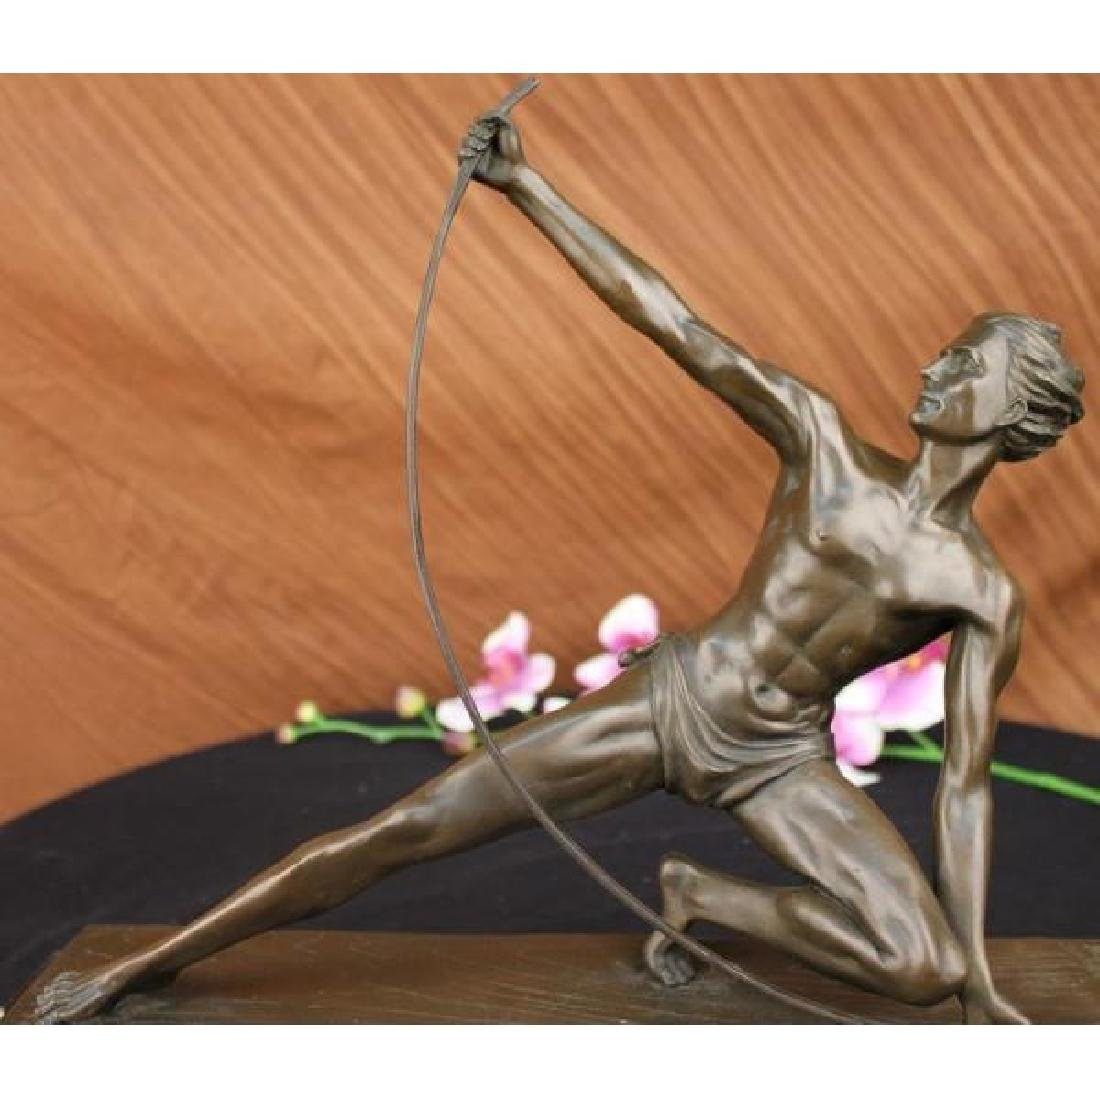 VINTAGE POWERFUL MAN WITH BOW BRONZE SCULPTURE STATUE